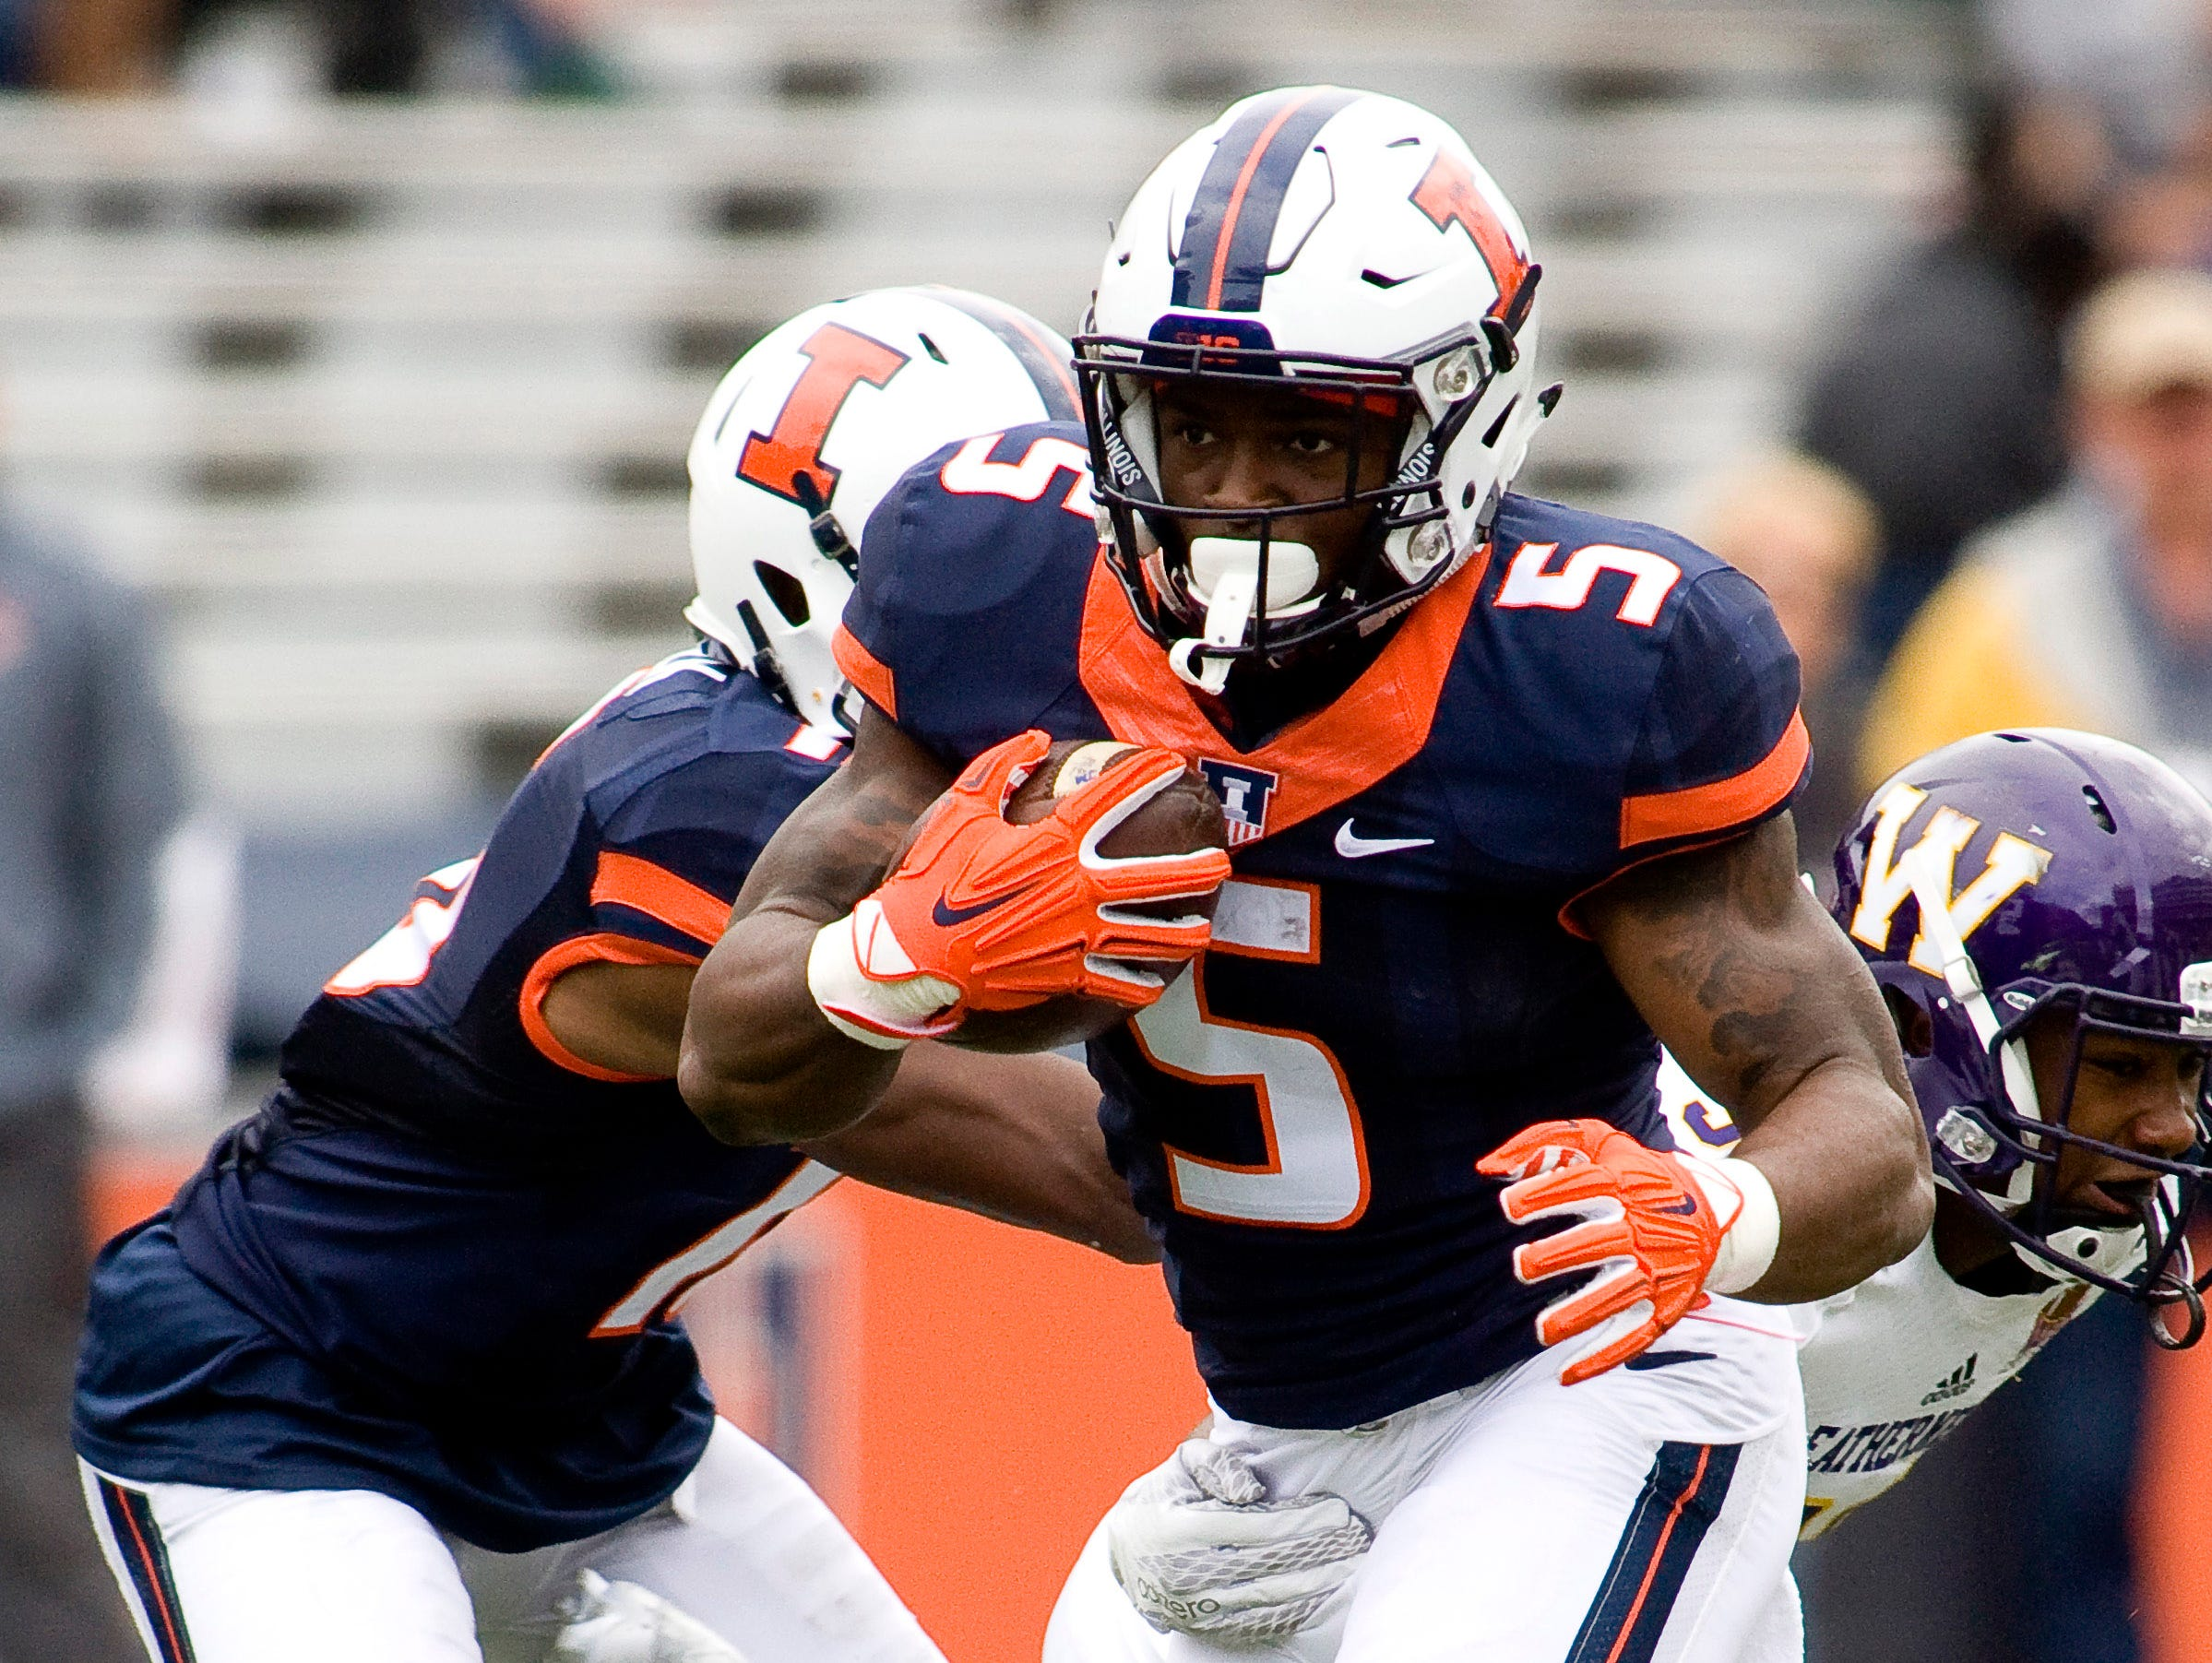 Illinois running back Ke'Shawn Vaughn (5) ran for a team-leading 723 yards and six touchdowns as a freshman in 2015.